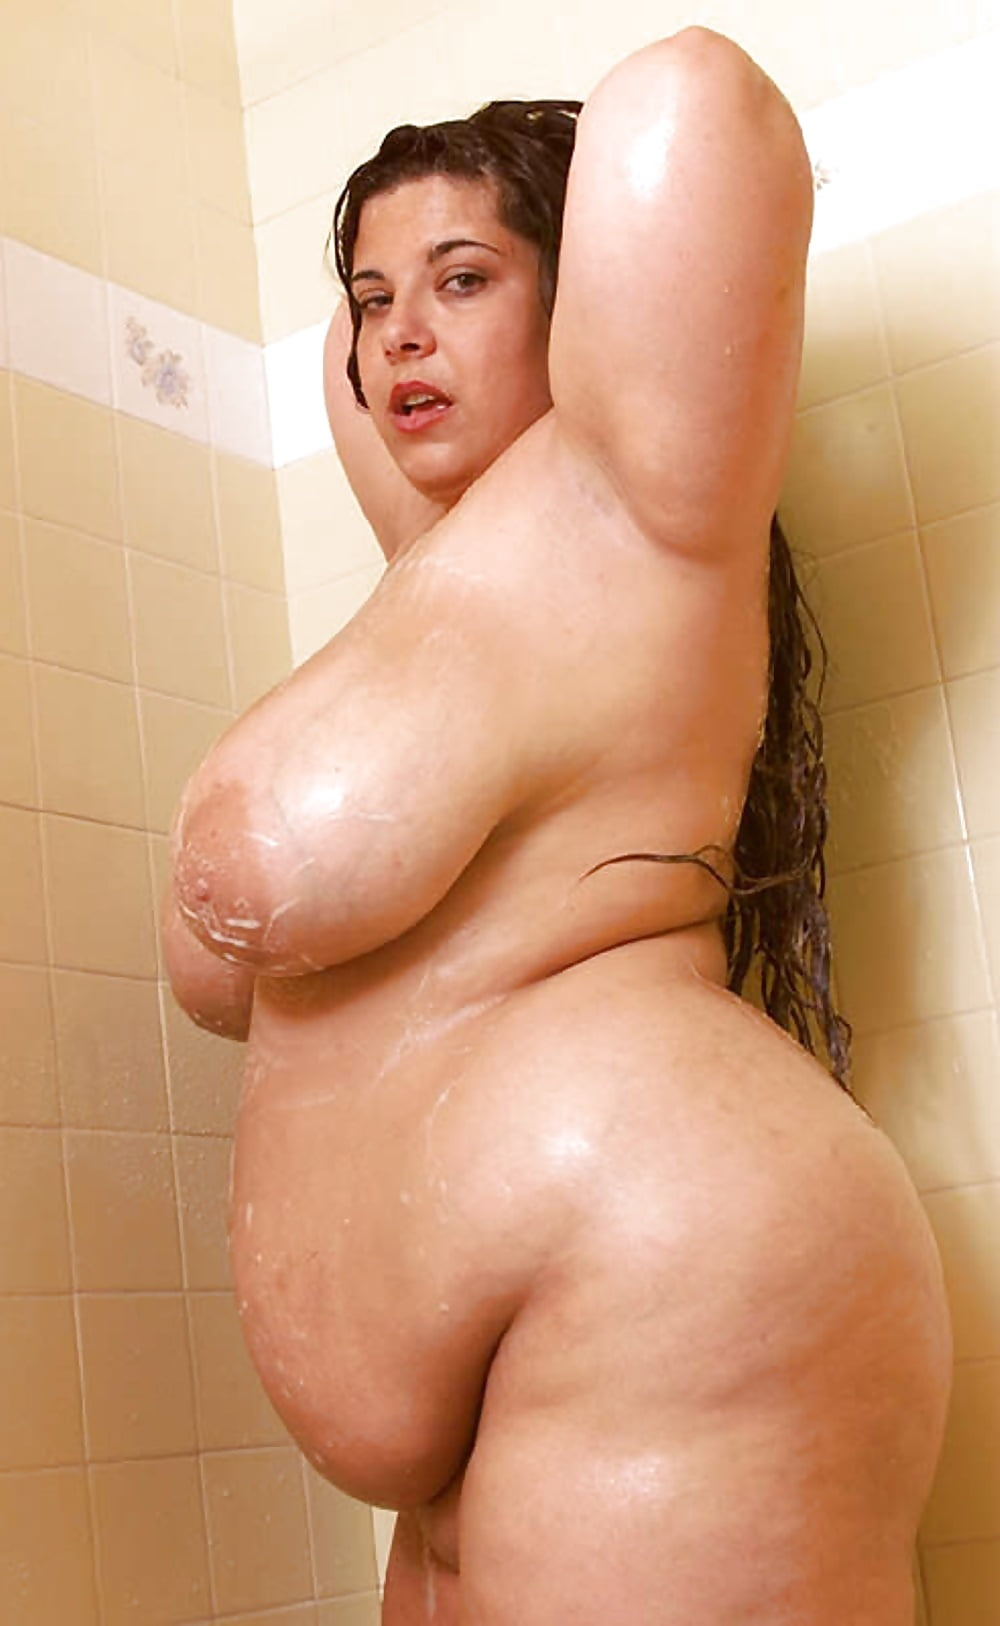 Fat naked women in shower, very young twink mature